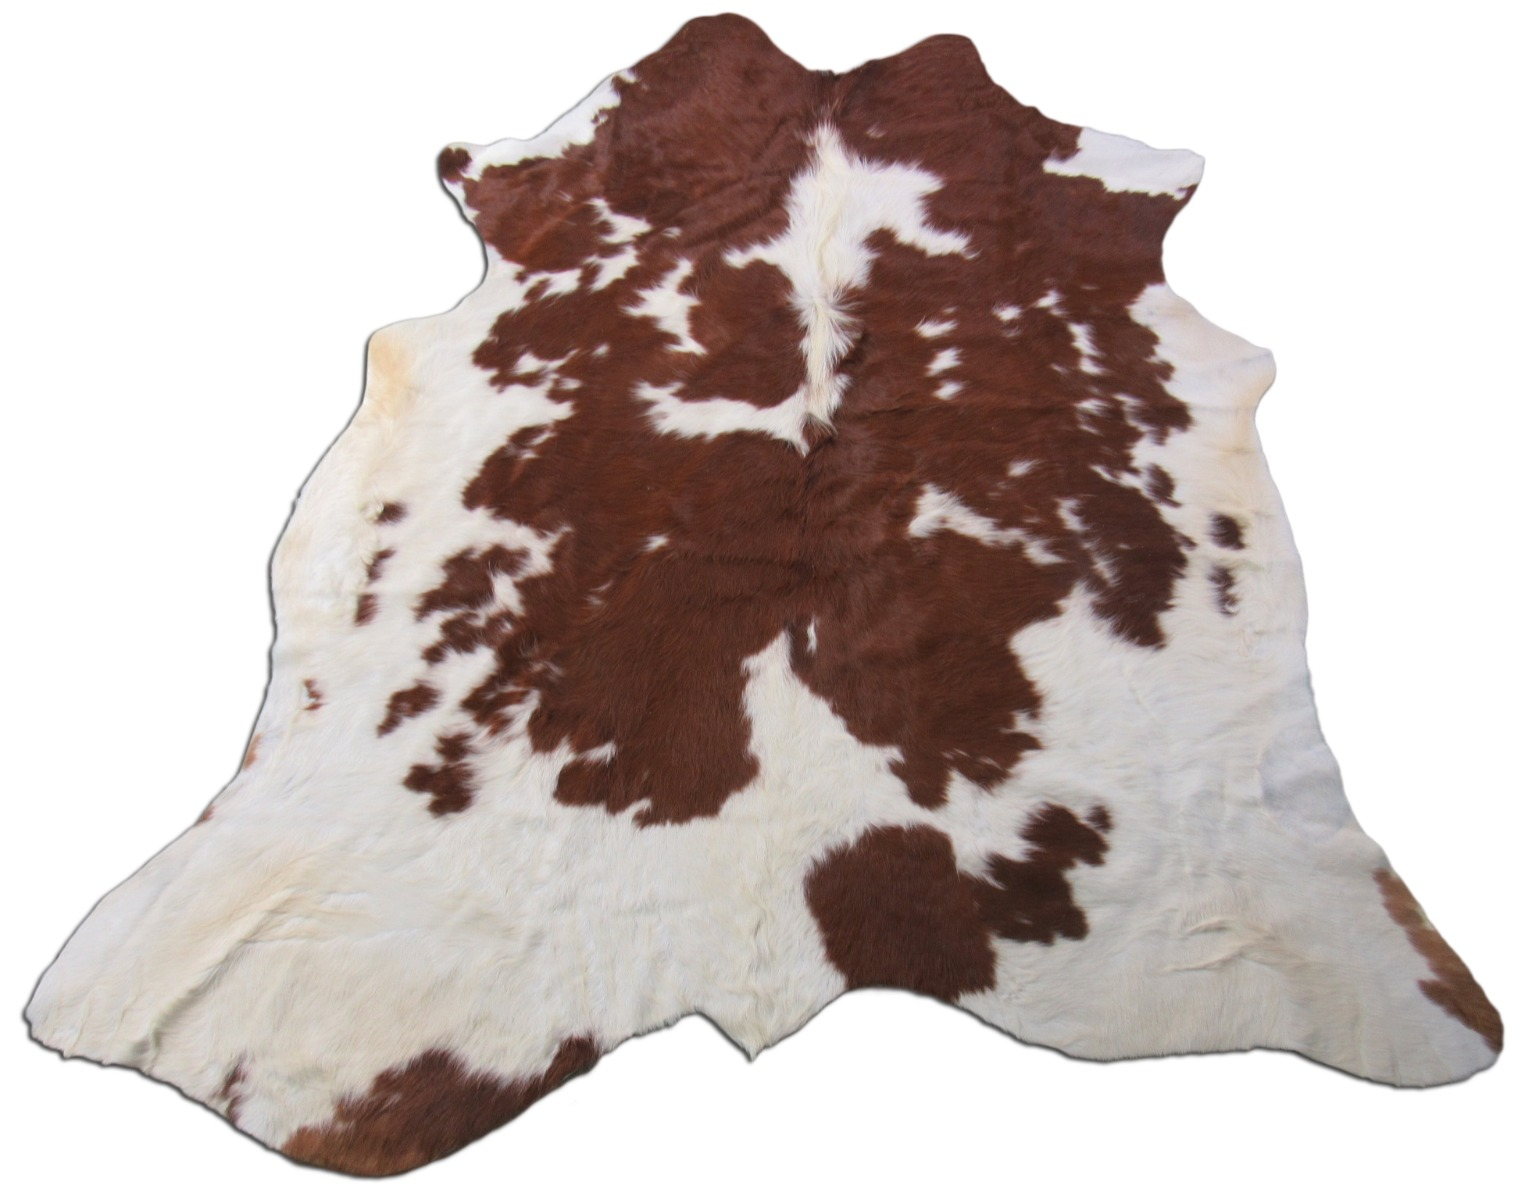 A-1437 Brown and White Spotted Cowhide Rug Size: 6 3/4' X 6'